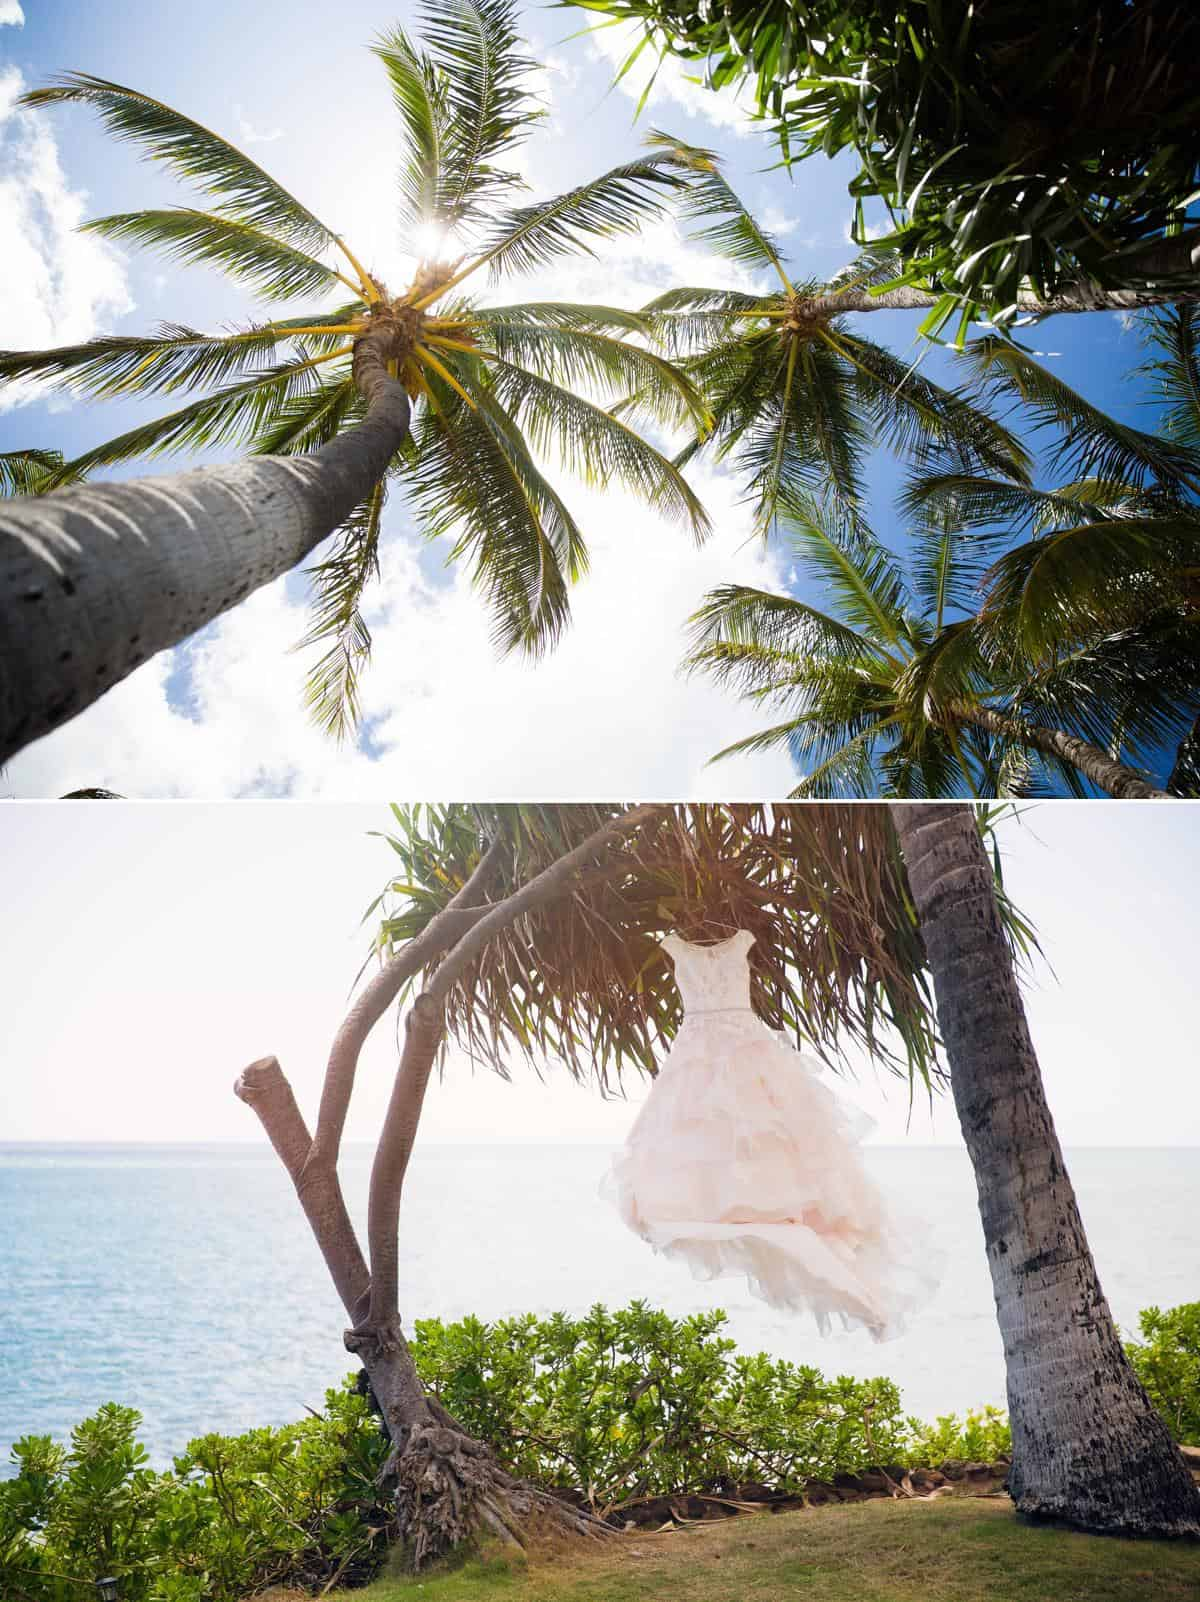 Wedding dress hanging from coconut tree Hawaii Destination wedding photographer www.benandhopeweddings.com.au